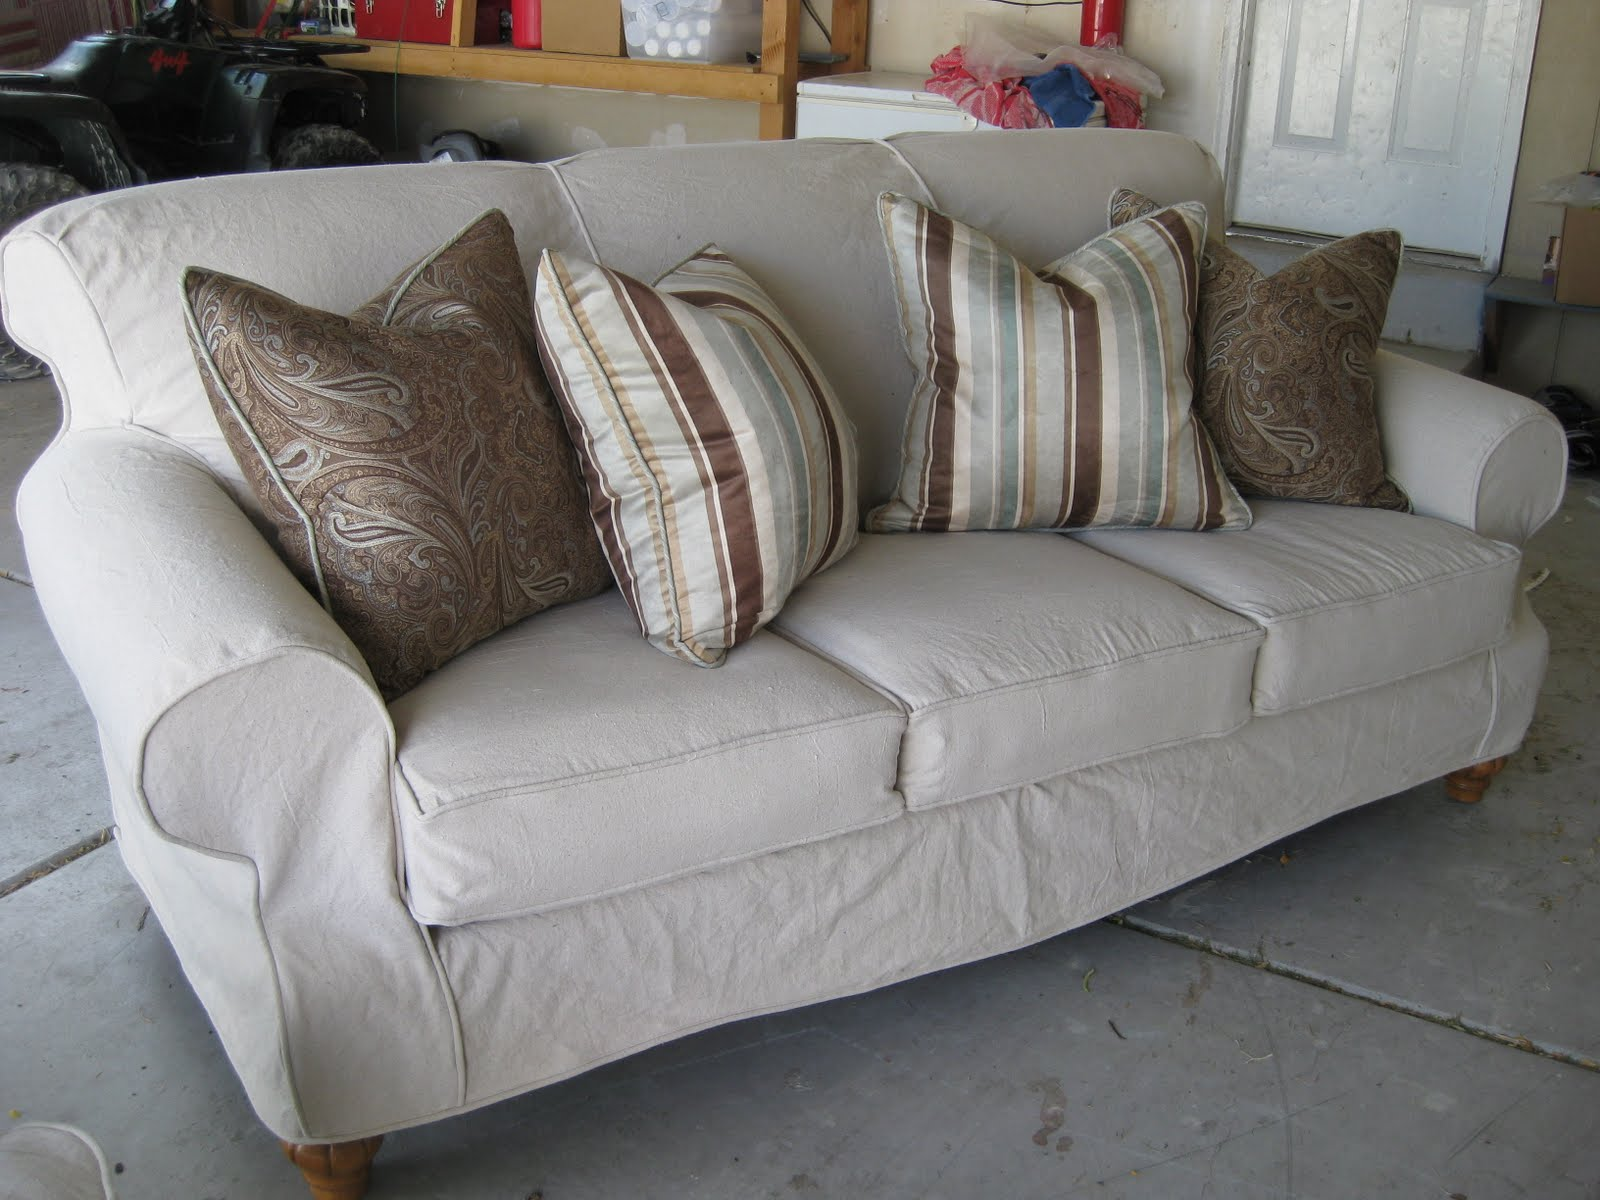 Dropcloth Couch And Chair Slipcovers By Shelley